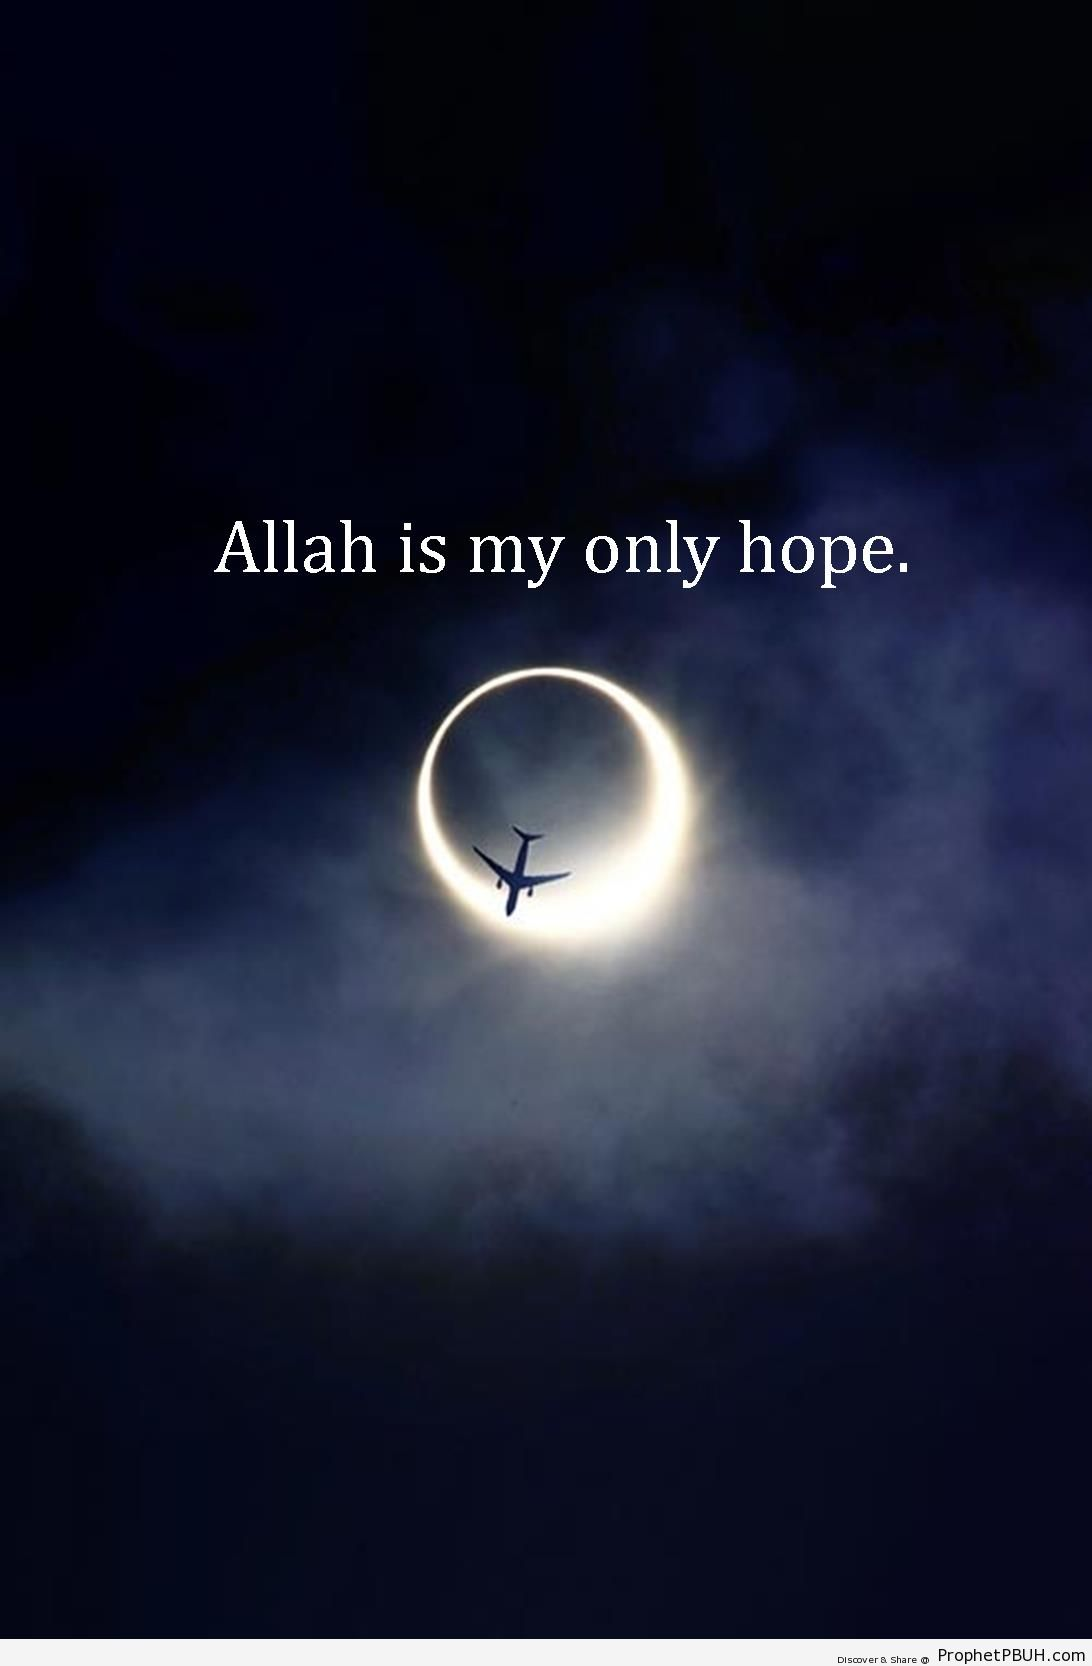 Allah is my only hope - Islamic Posters